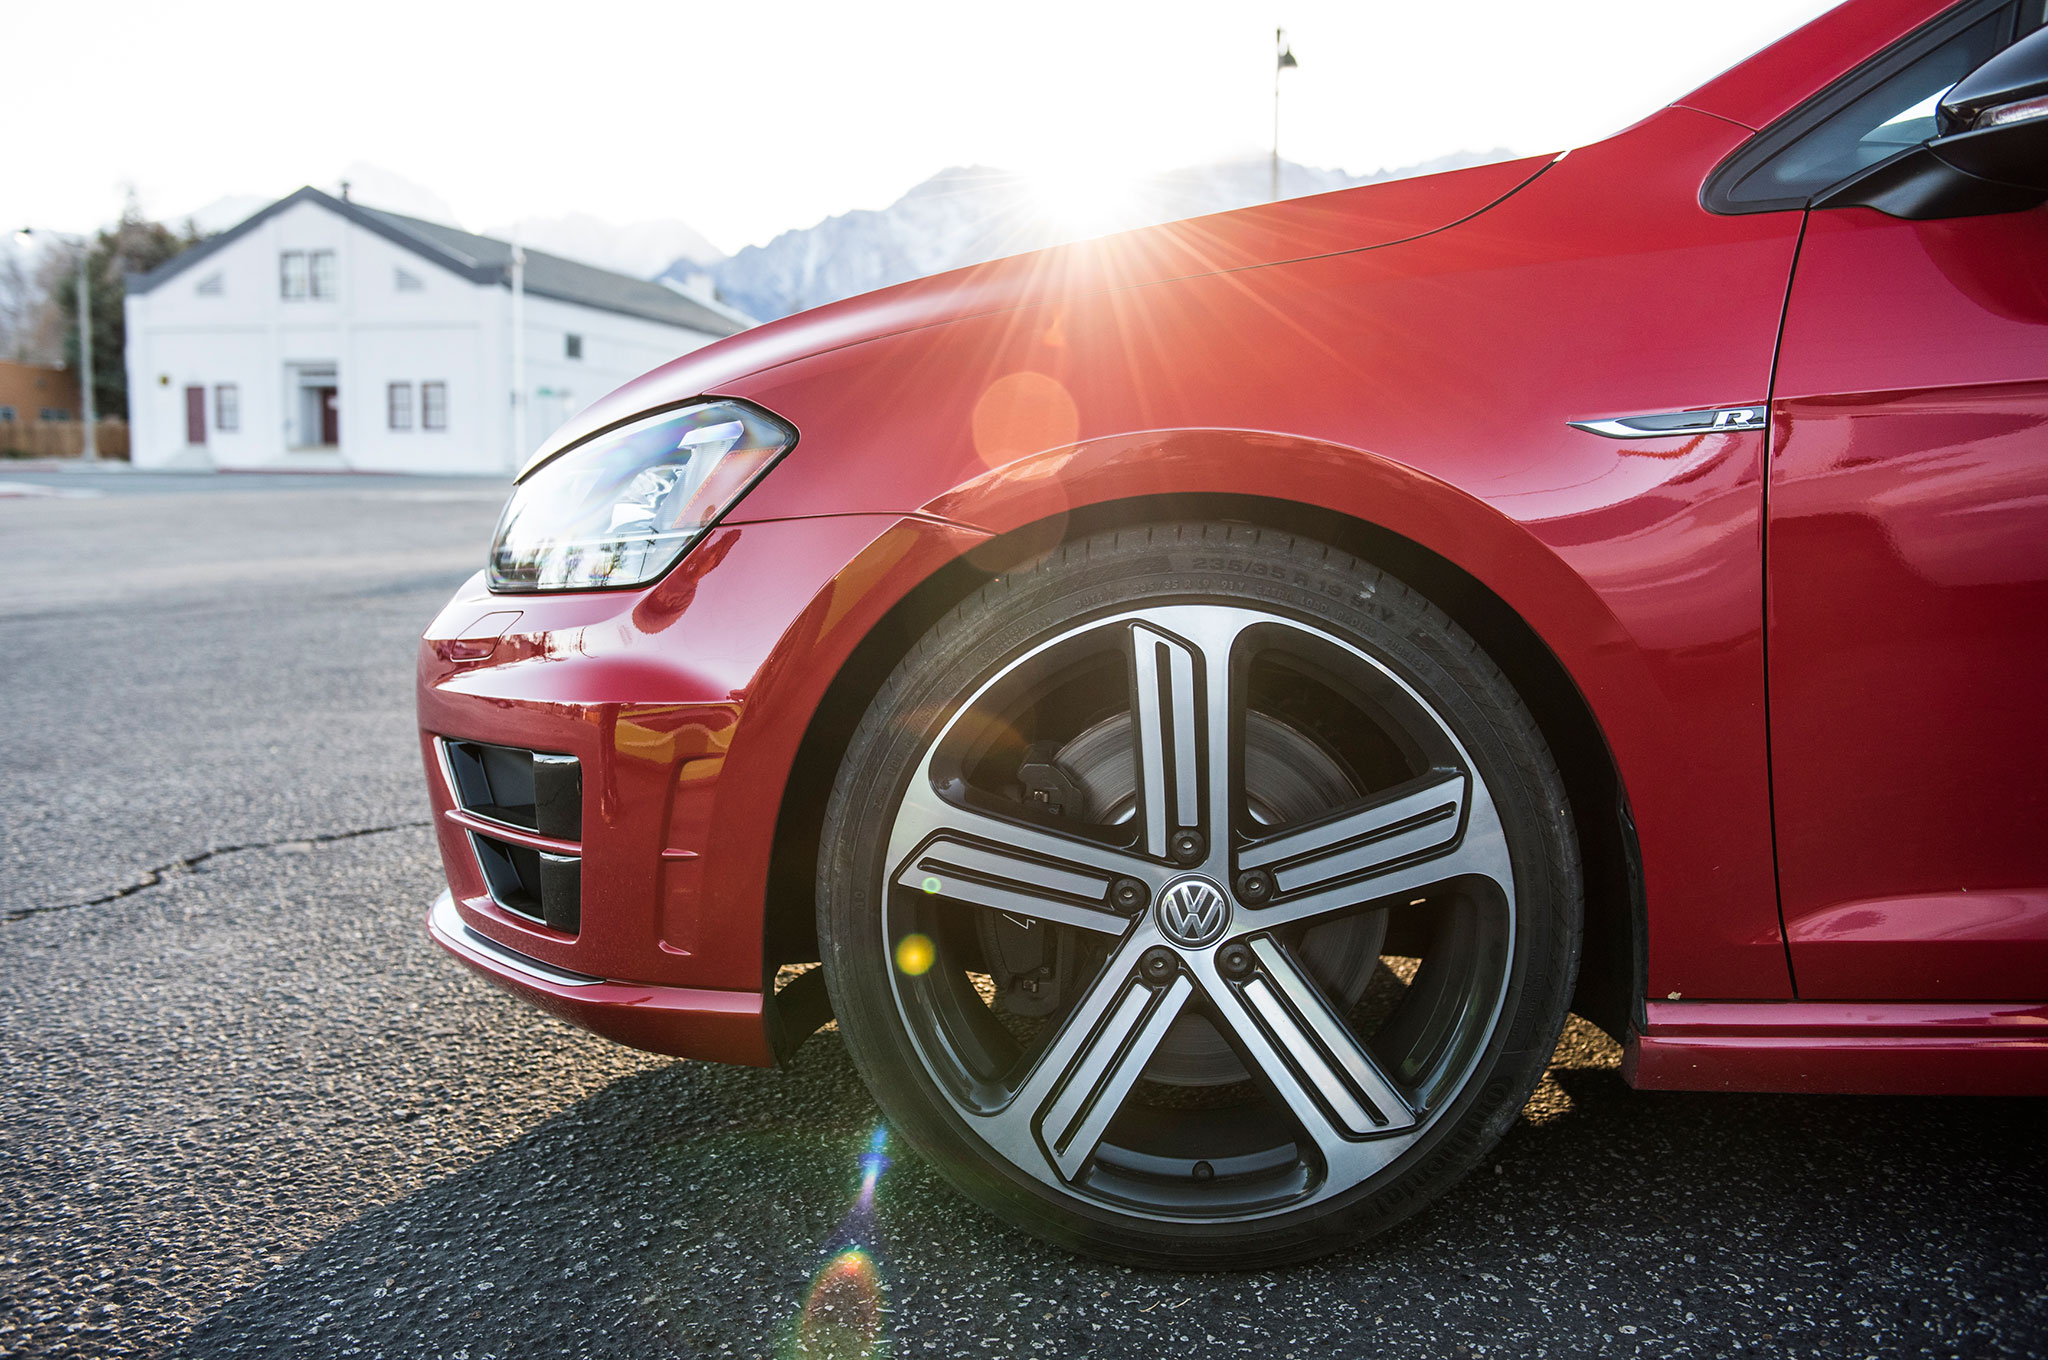 Volkswagen Golf R wheel 01